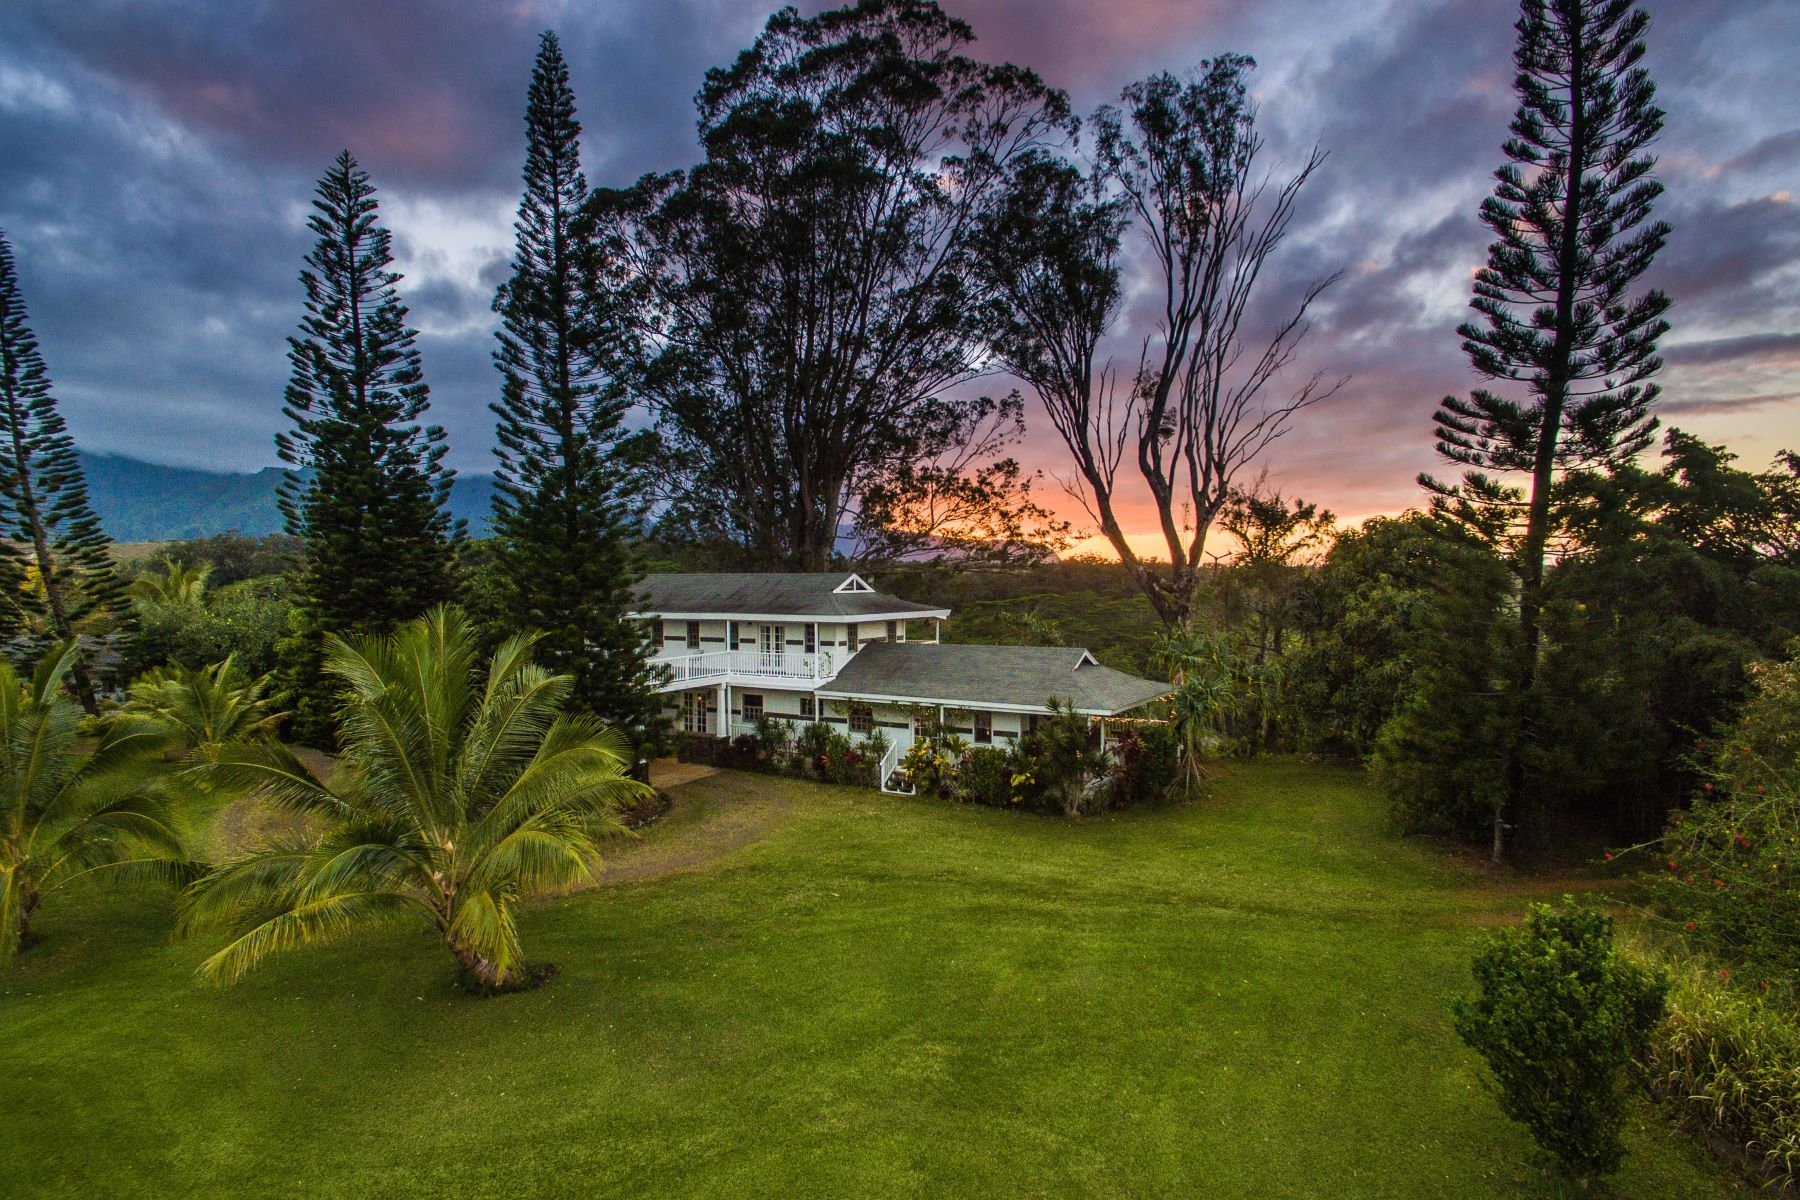 Villa per Vendita alle ore Kauai 5-Acre Multi-Family Estate with Mountain, Waterfall, Sunset & Valley Views 5150 Kahiliholo Road #A Kilauea, Hawaii 96754 Stati Uniti